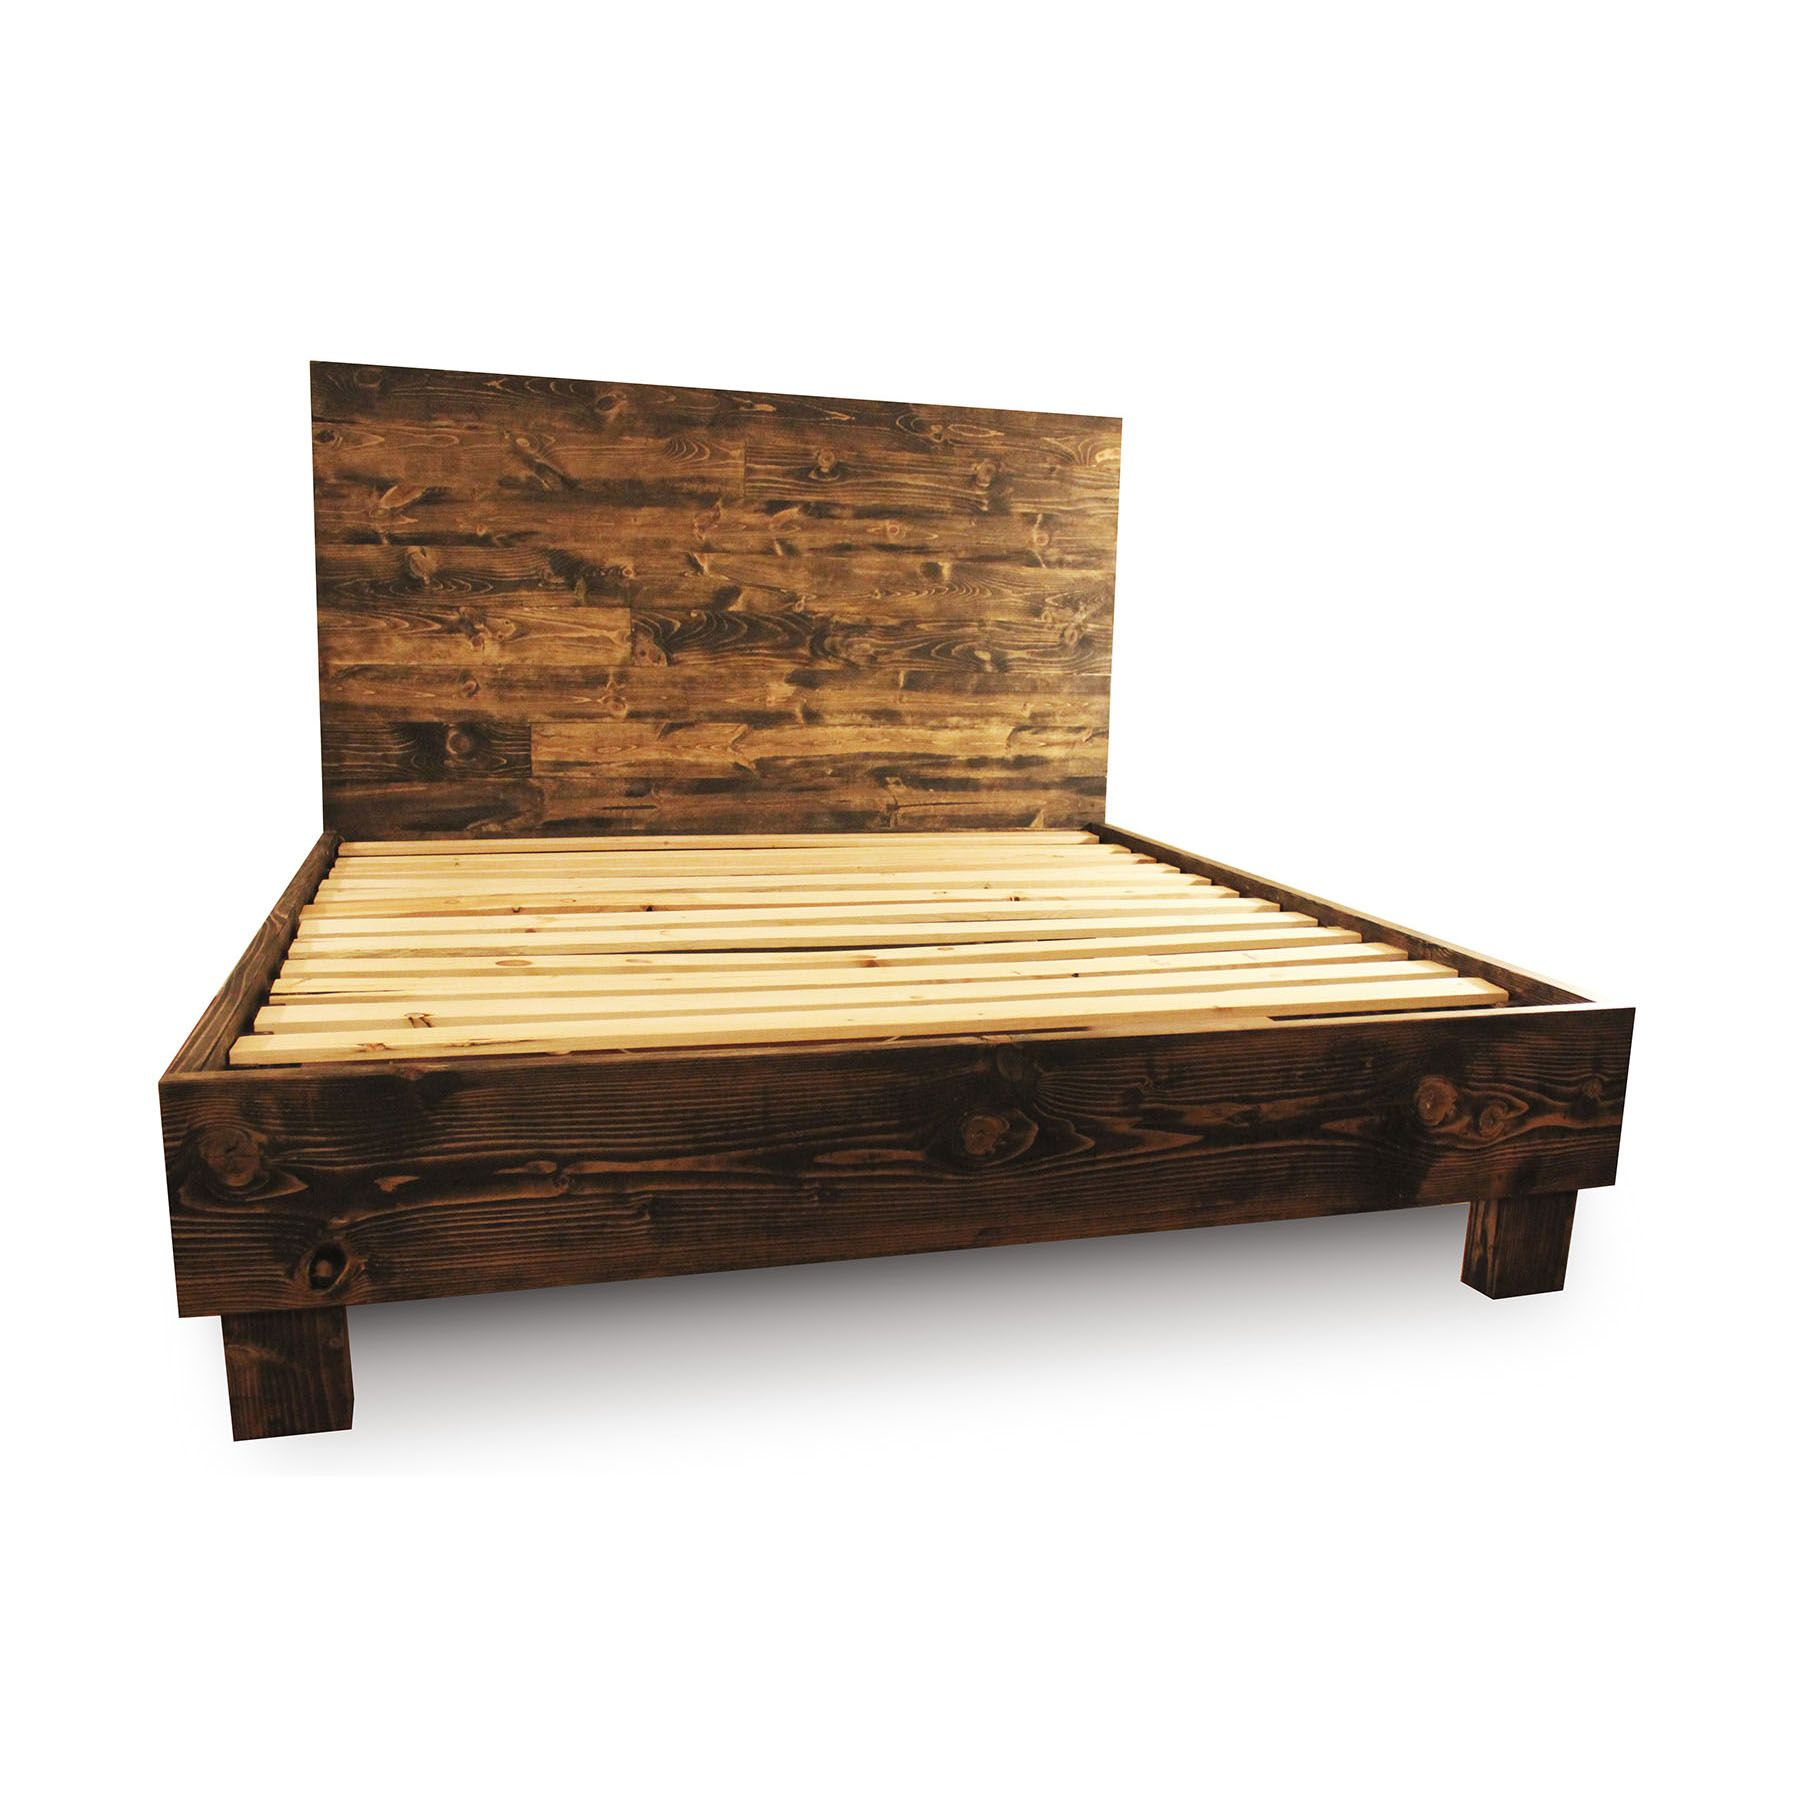 Custom Made Rustic Solid Wood Platform Bed Frame Headboard Reclaimed Style